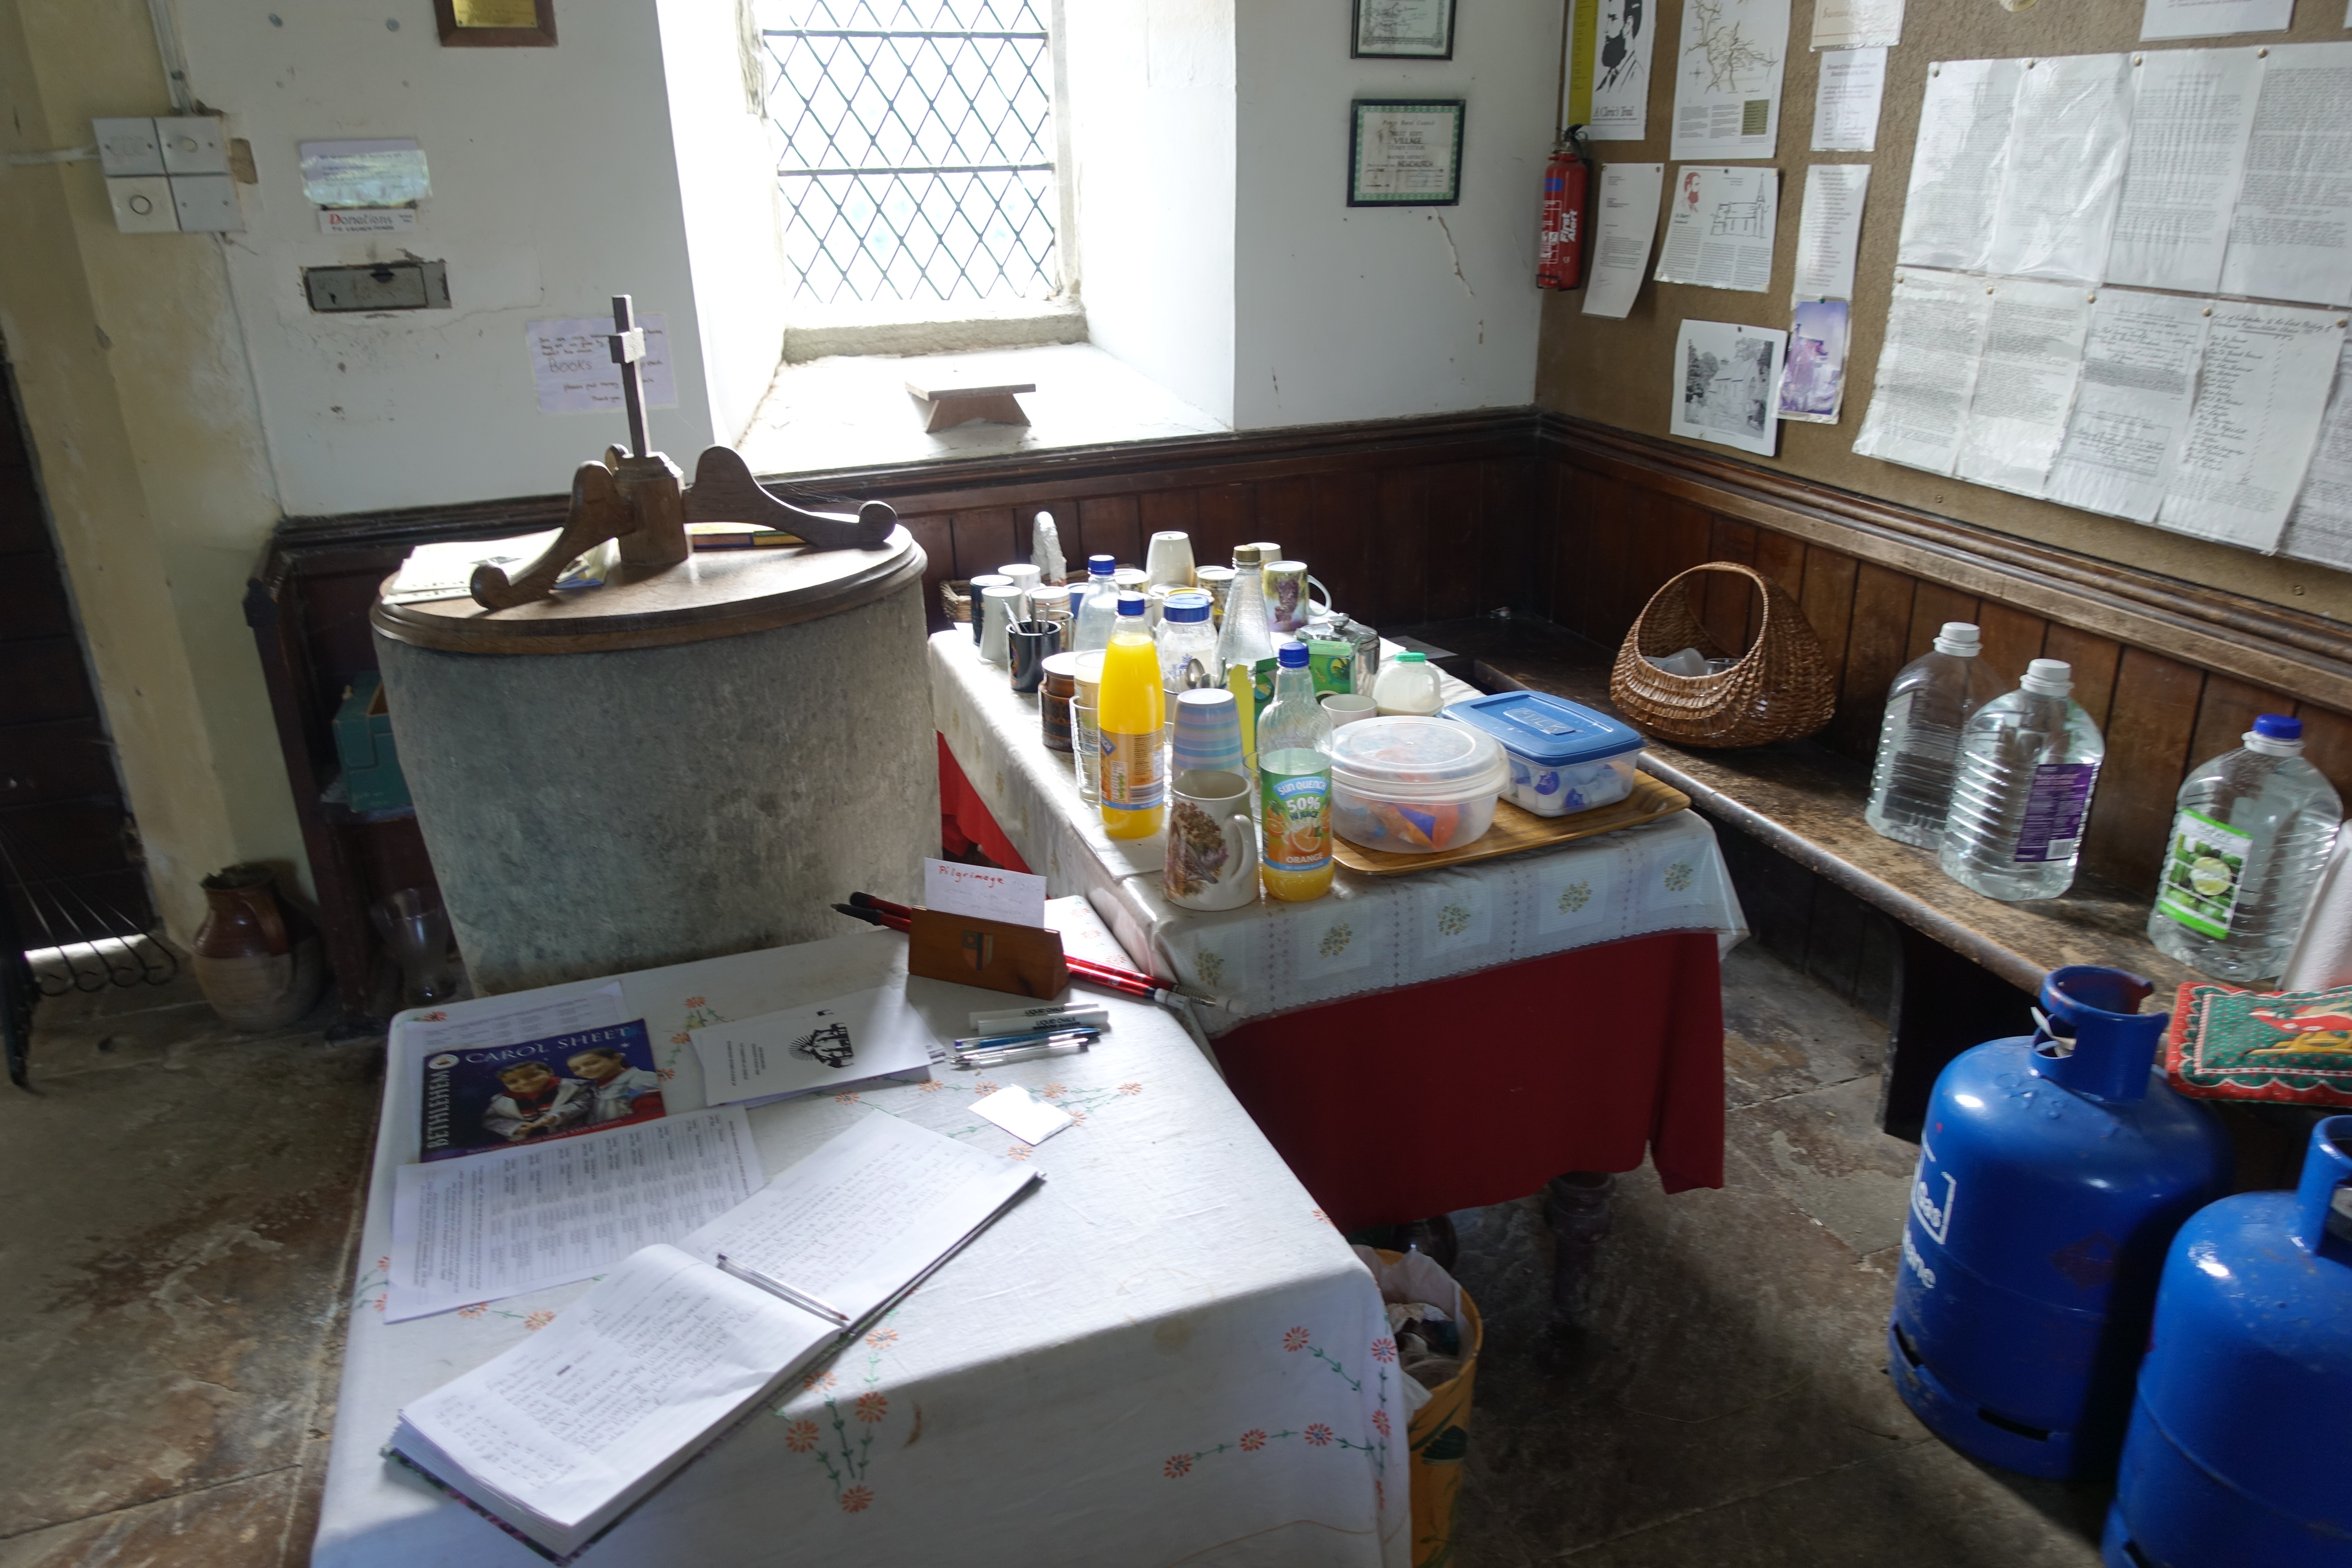 One oft over-looked resource on trail are churches. St. Marys, Newchurch